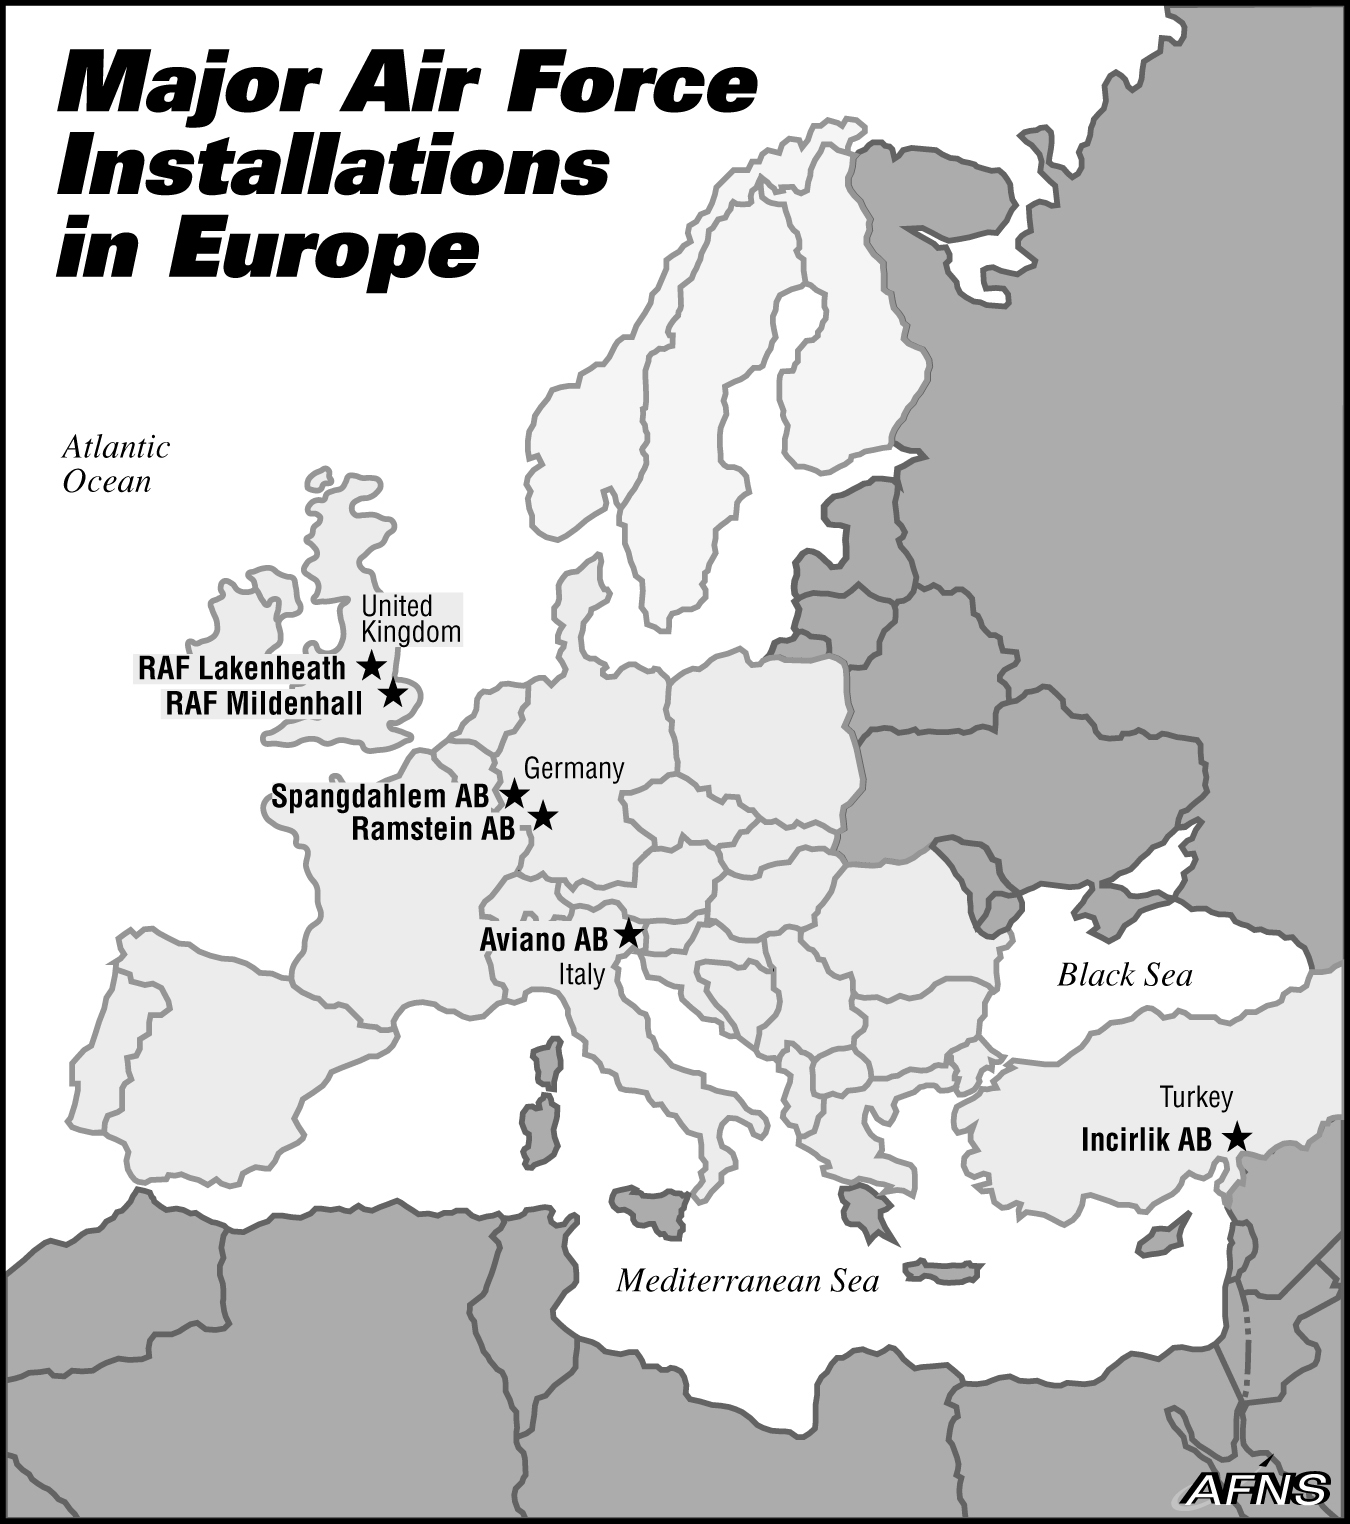 Air Force Bases In England Map.Major Air Force Installations In Europe